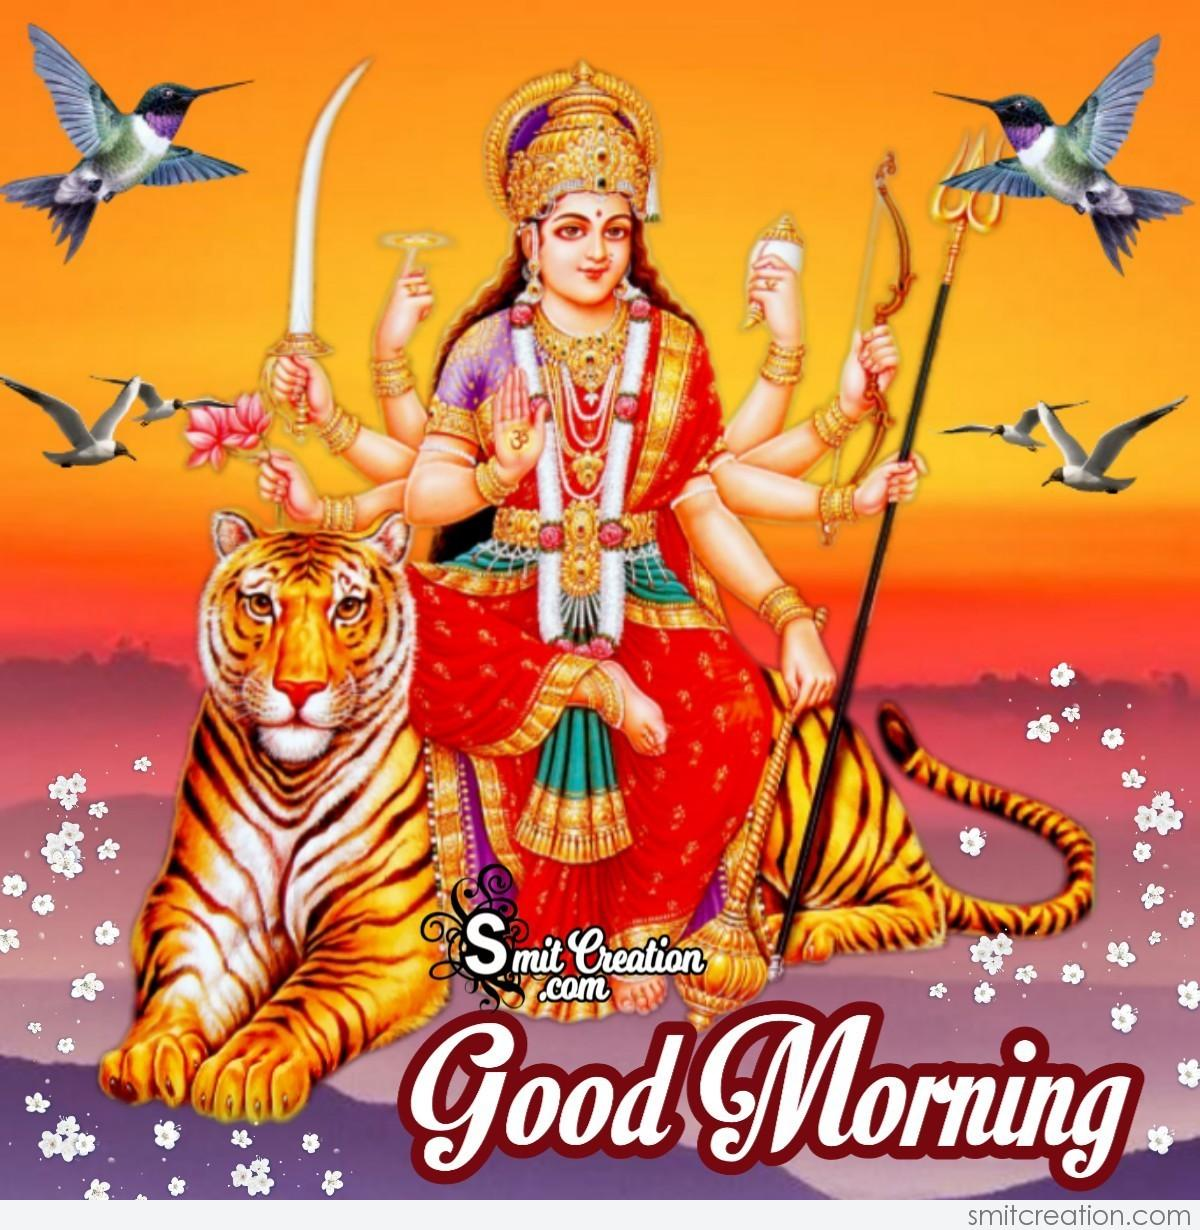 Devi Maa Good Morning Pictures and Graphics - SmitCreation.com